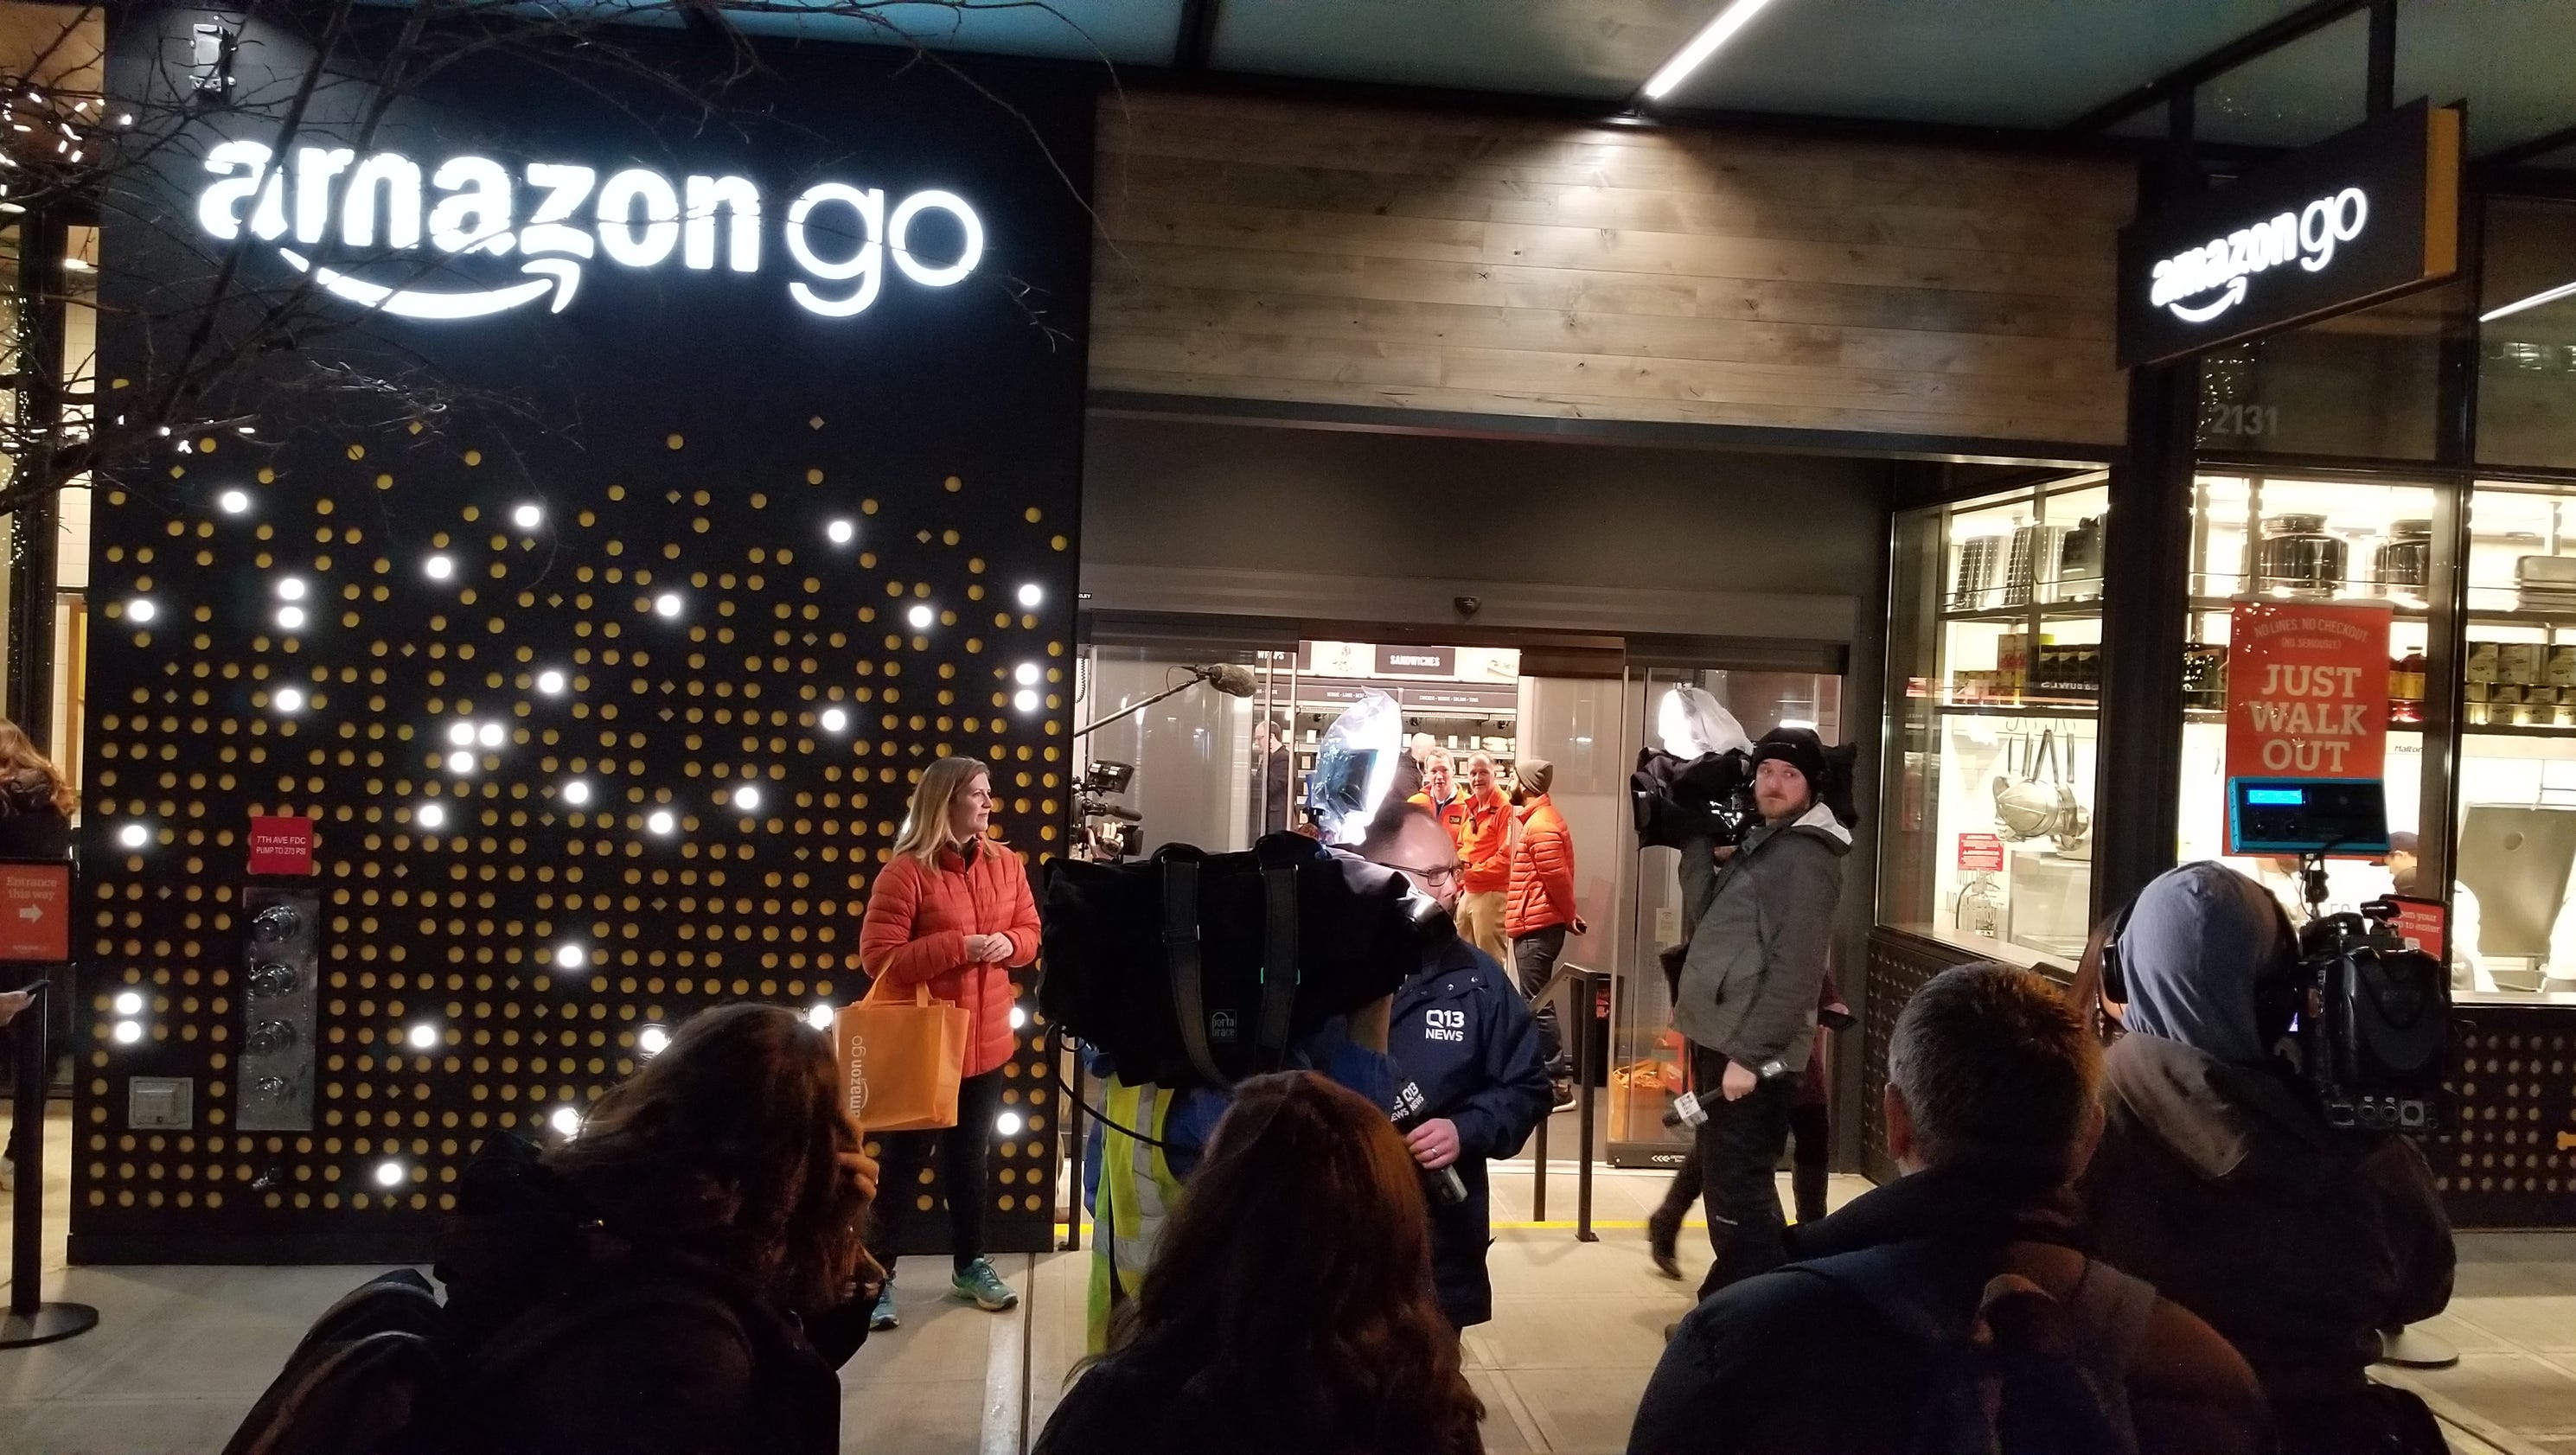 Amazon Go: Lines form in Seattle to be among the first to try checkout-free shopping